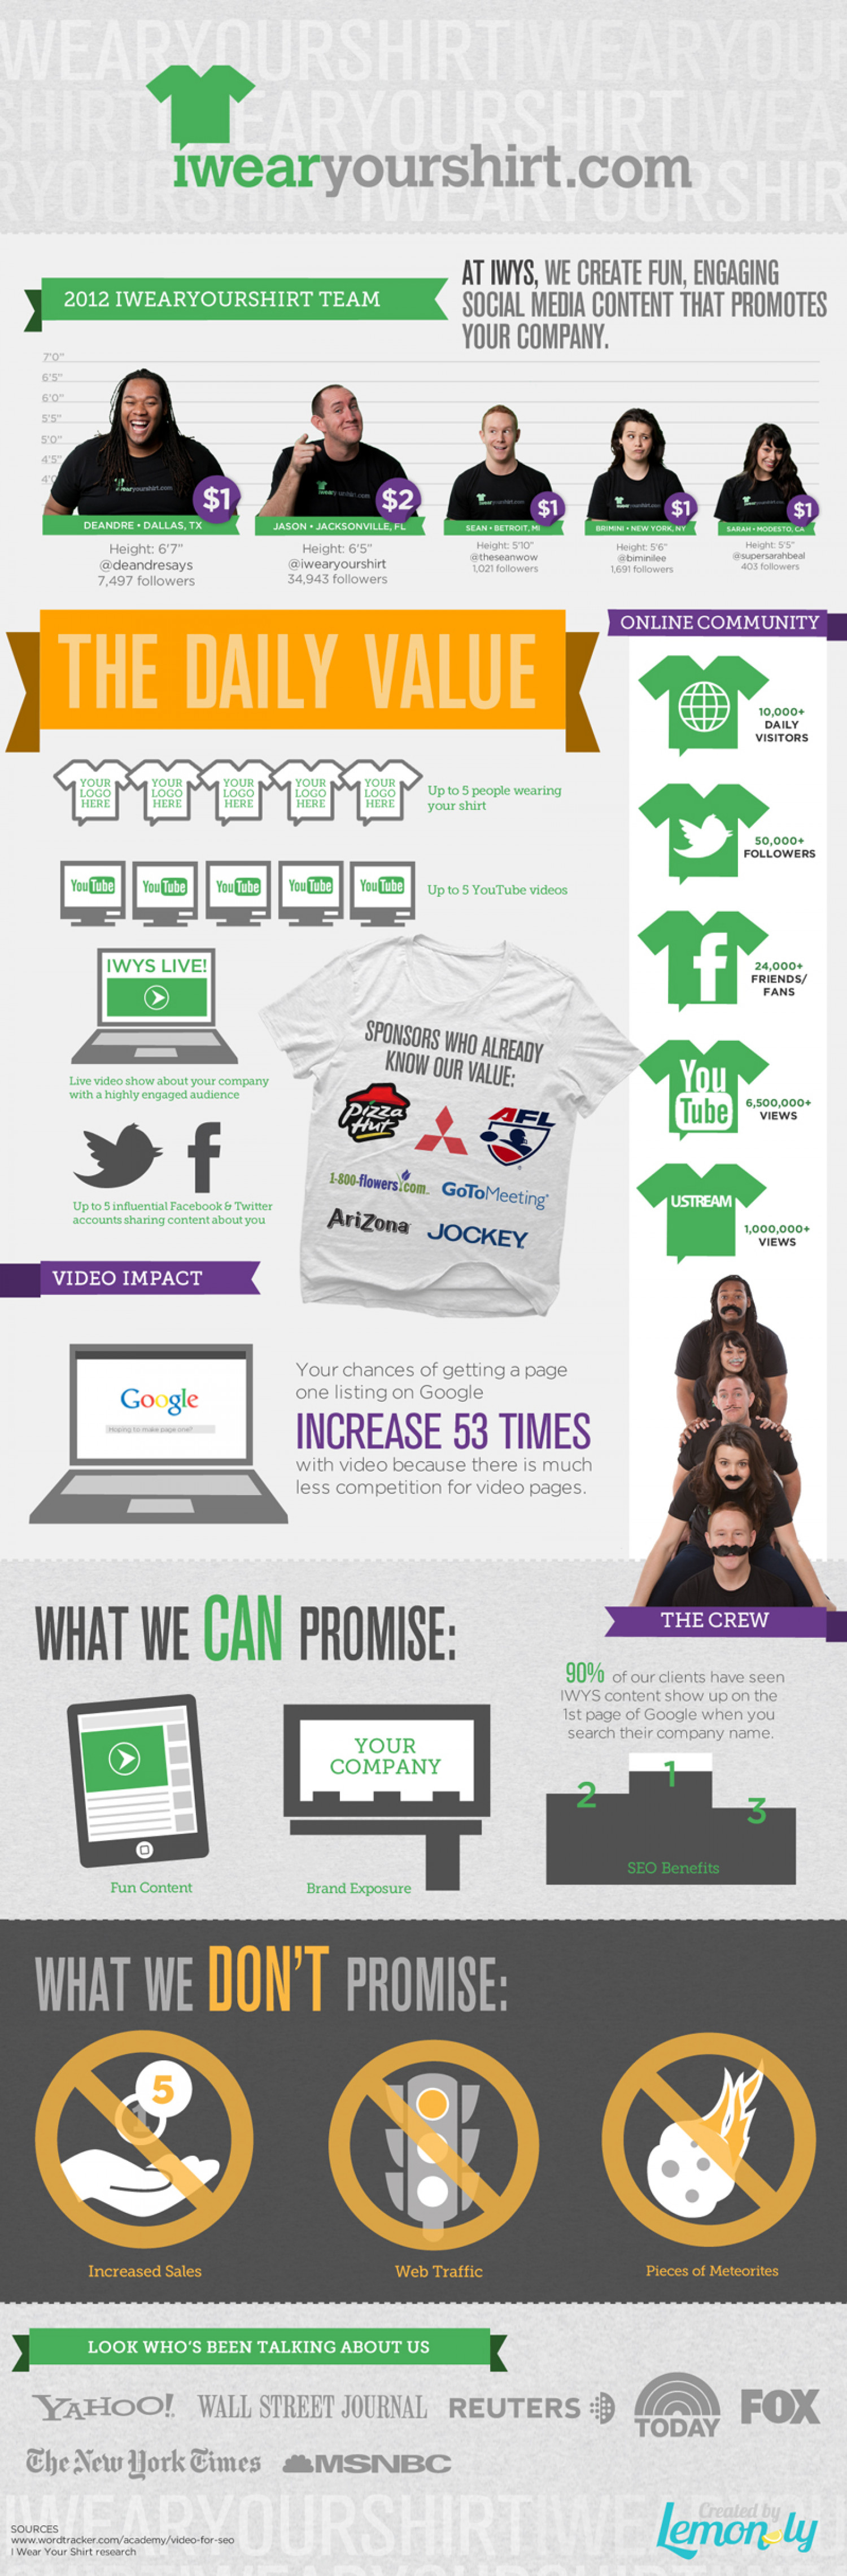 IWearYourShirt 2012 Fun! Infographic